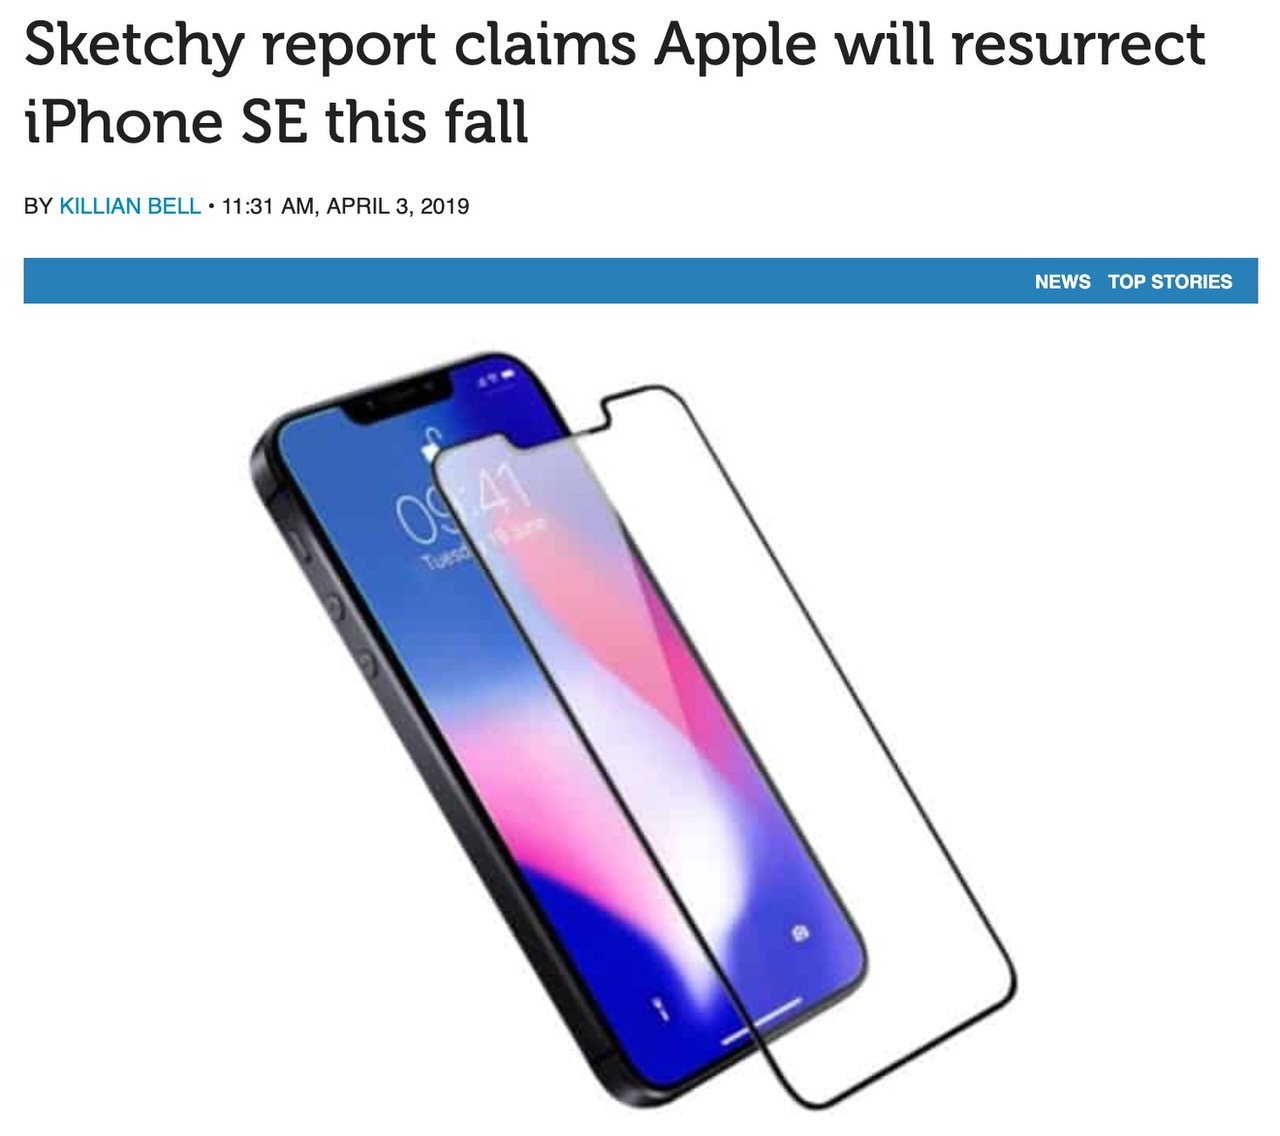 「iPhone XE」iPhone SE後継モデルとして4.8インチOLED&A12 Bionic搭載で2019秋にリリースか?